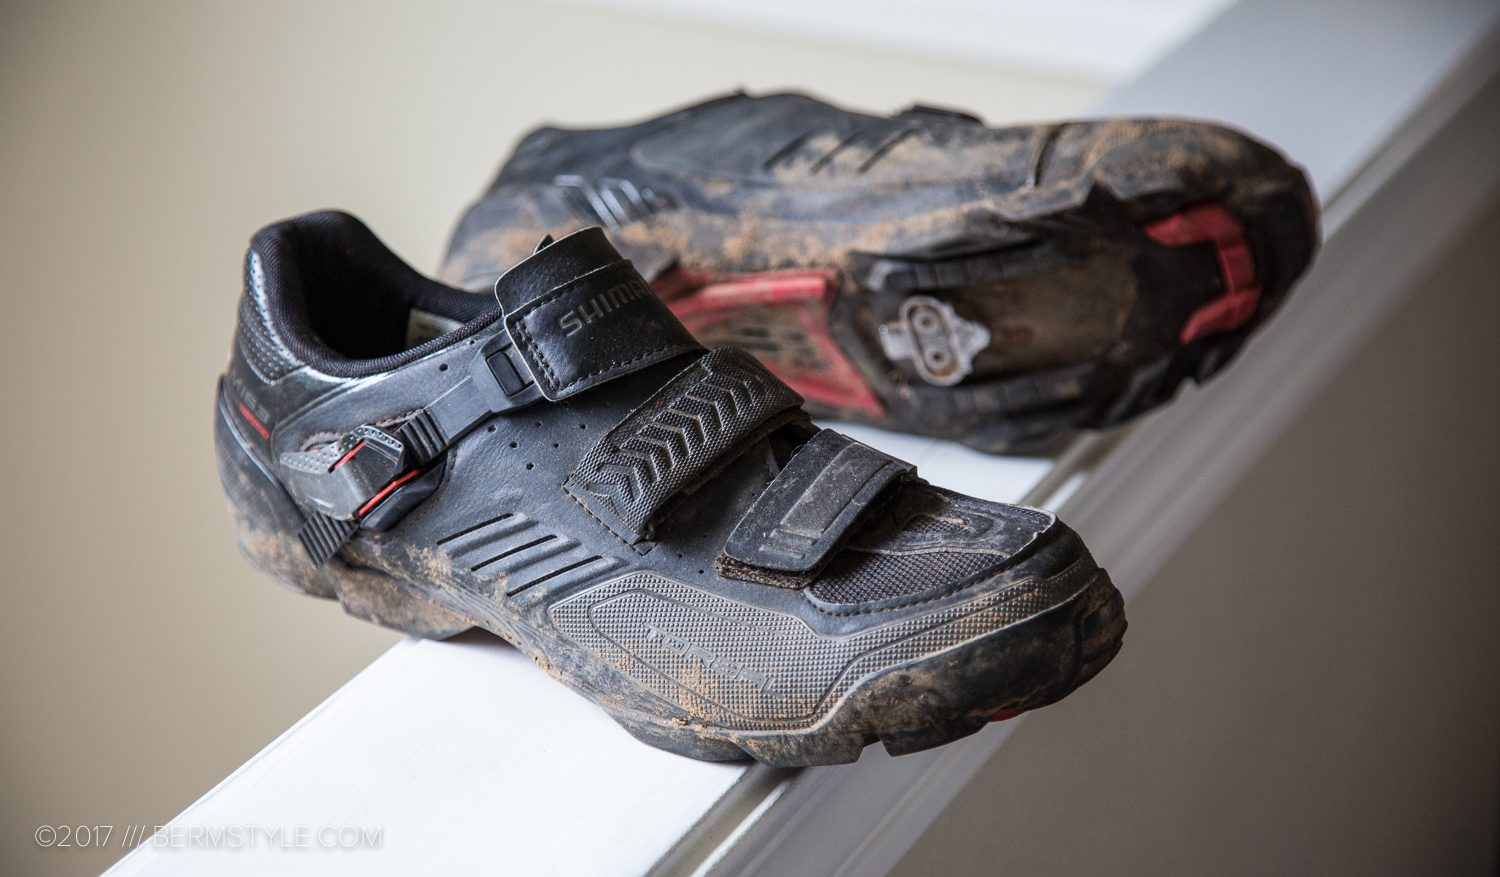 Review: Shimano M163 MTB Shoes